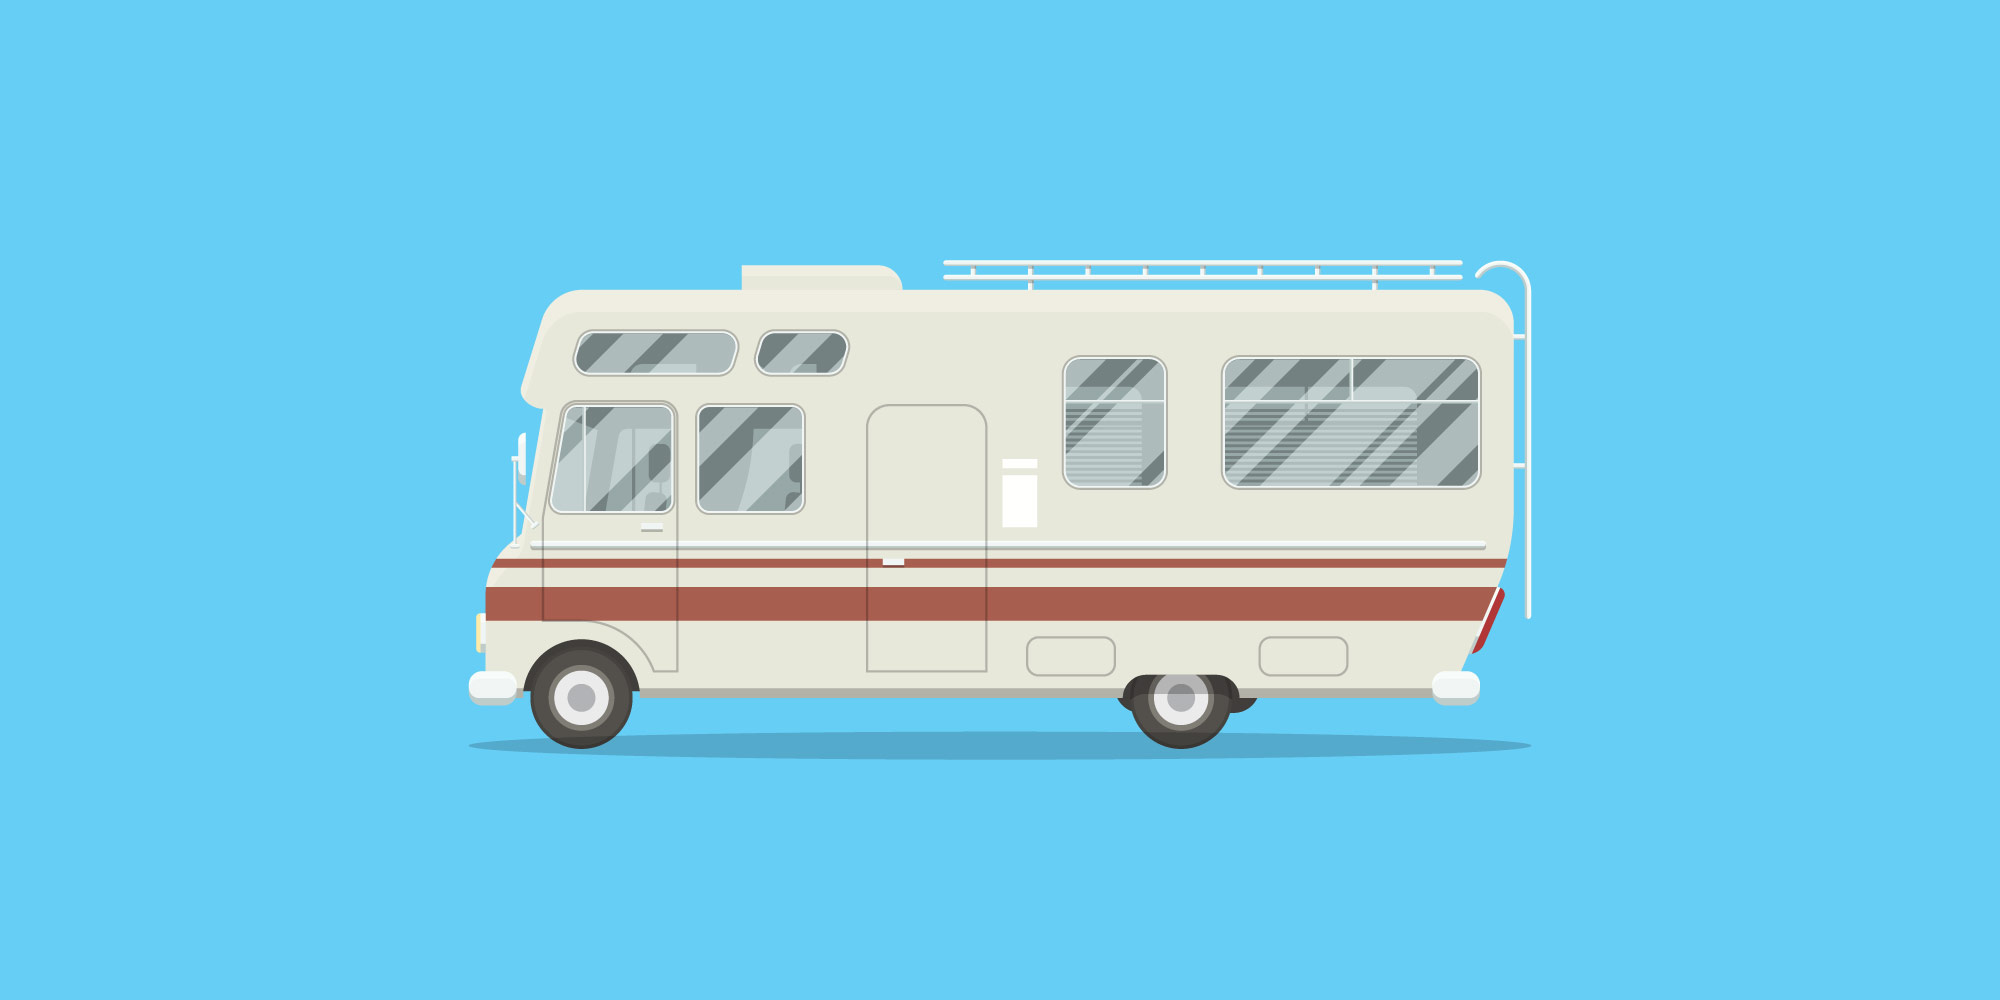 illustration of an RV on blue background